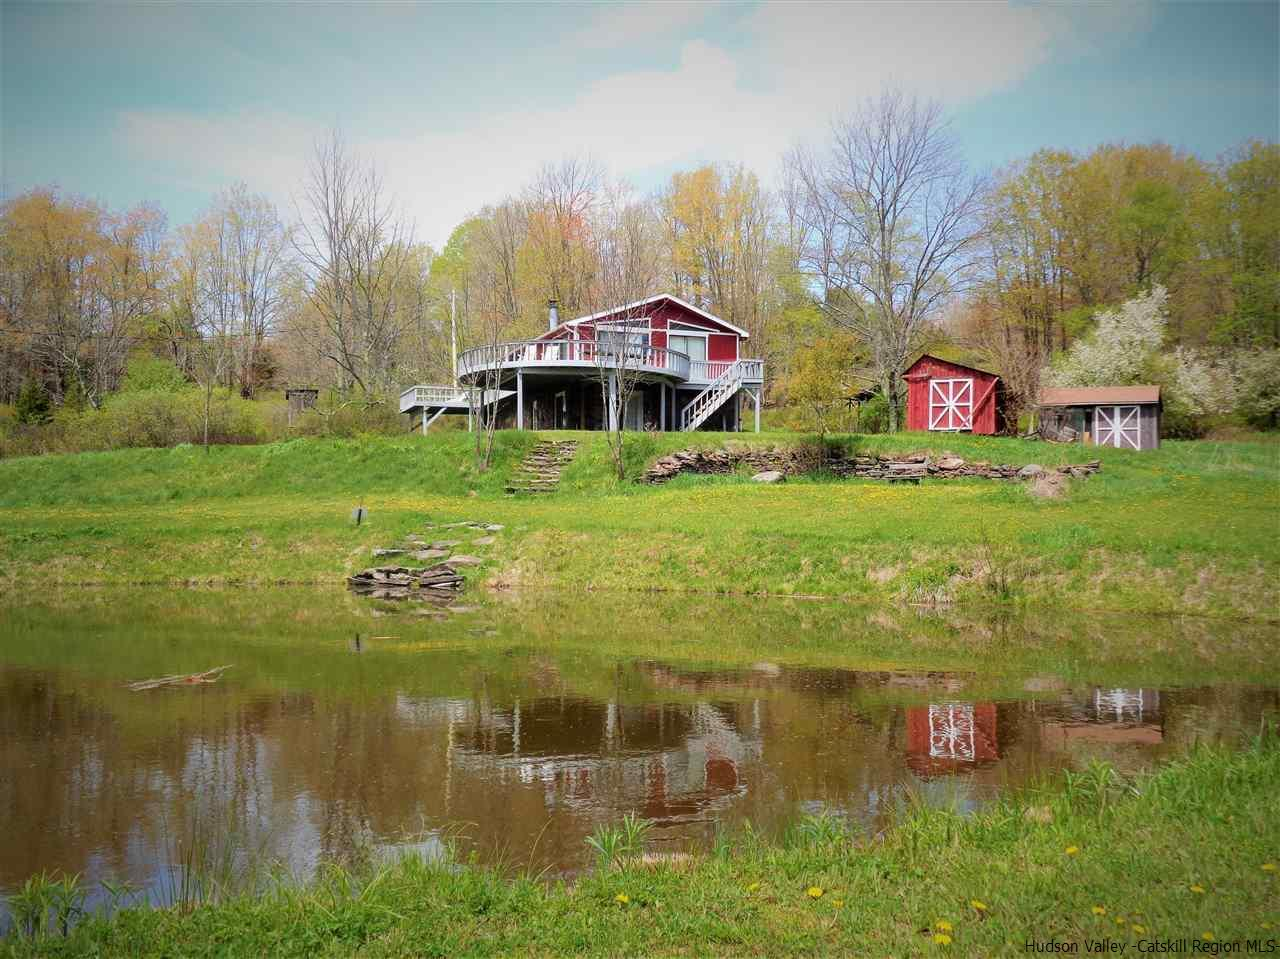 Single Family Home for Sale at 1932 Route 23C 1932 Route 23C Jewett, New York 12444 United States